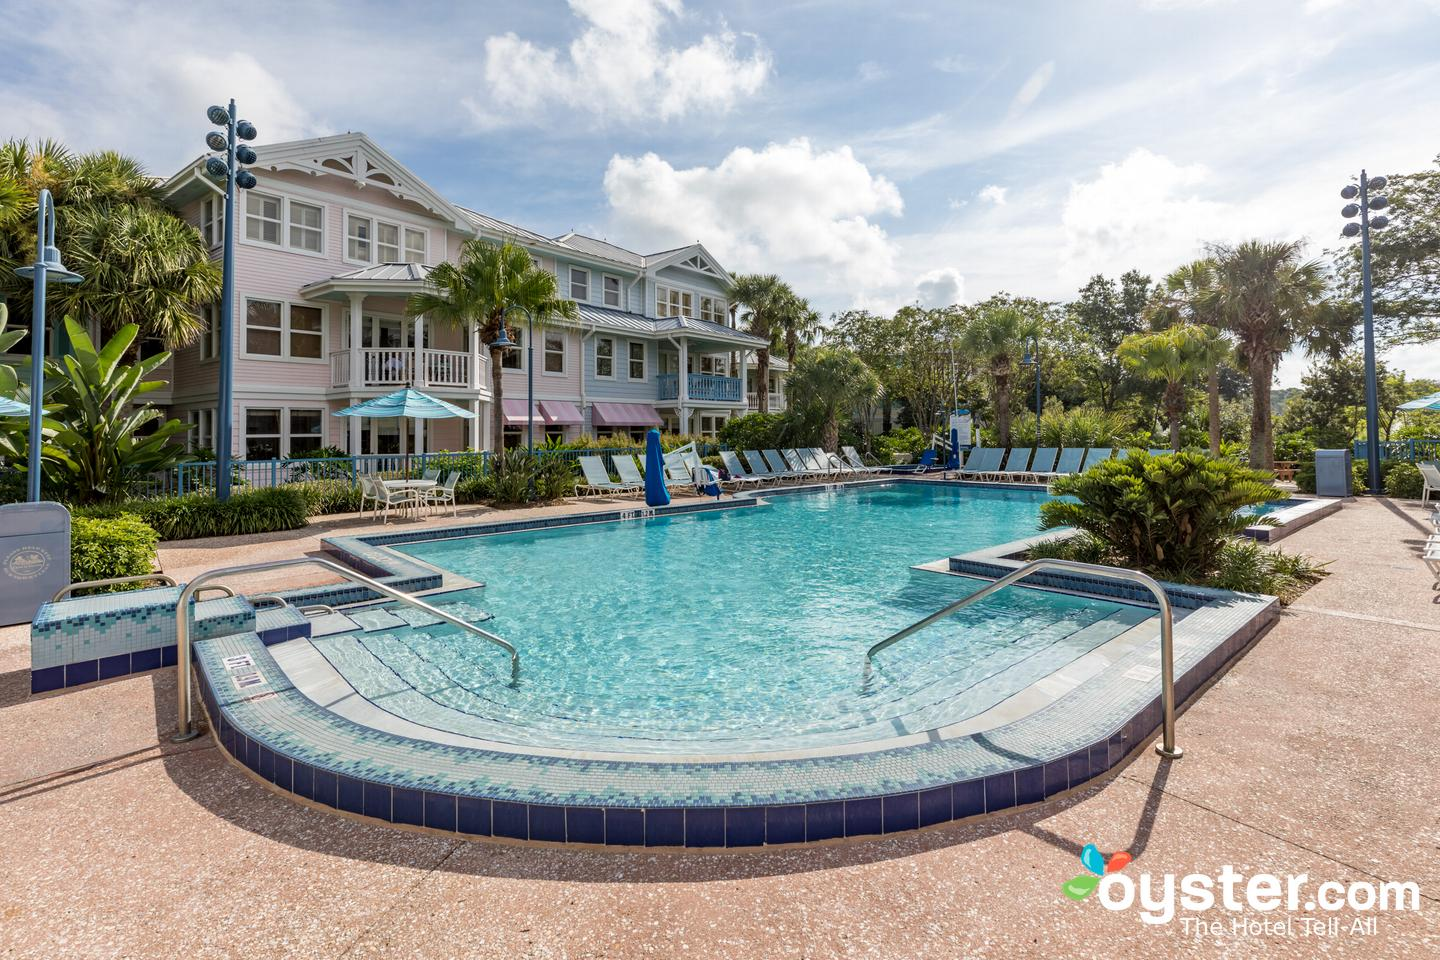 Disney S Old Key West Resort Review What To Really Expect If You Stay